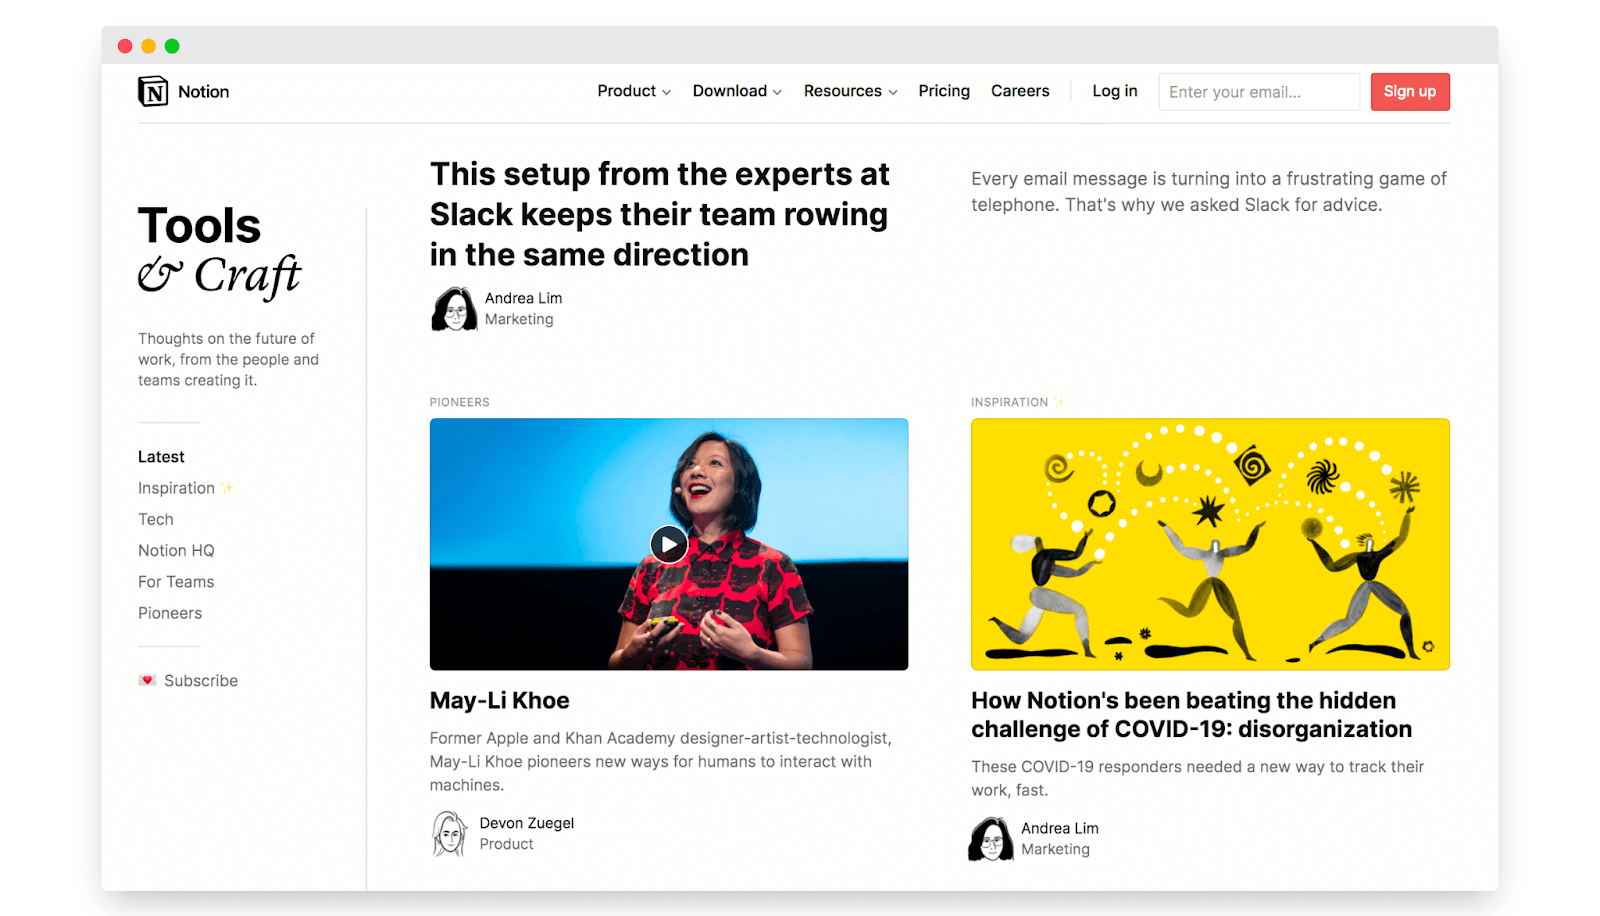 Notion tools and craft expert content